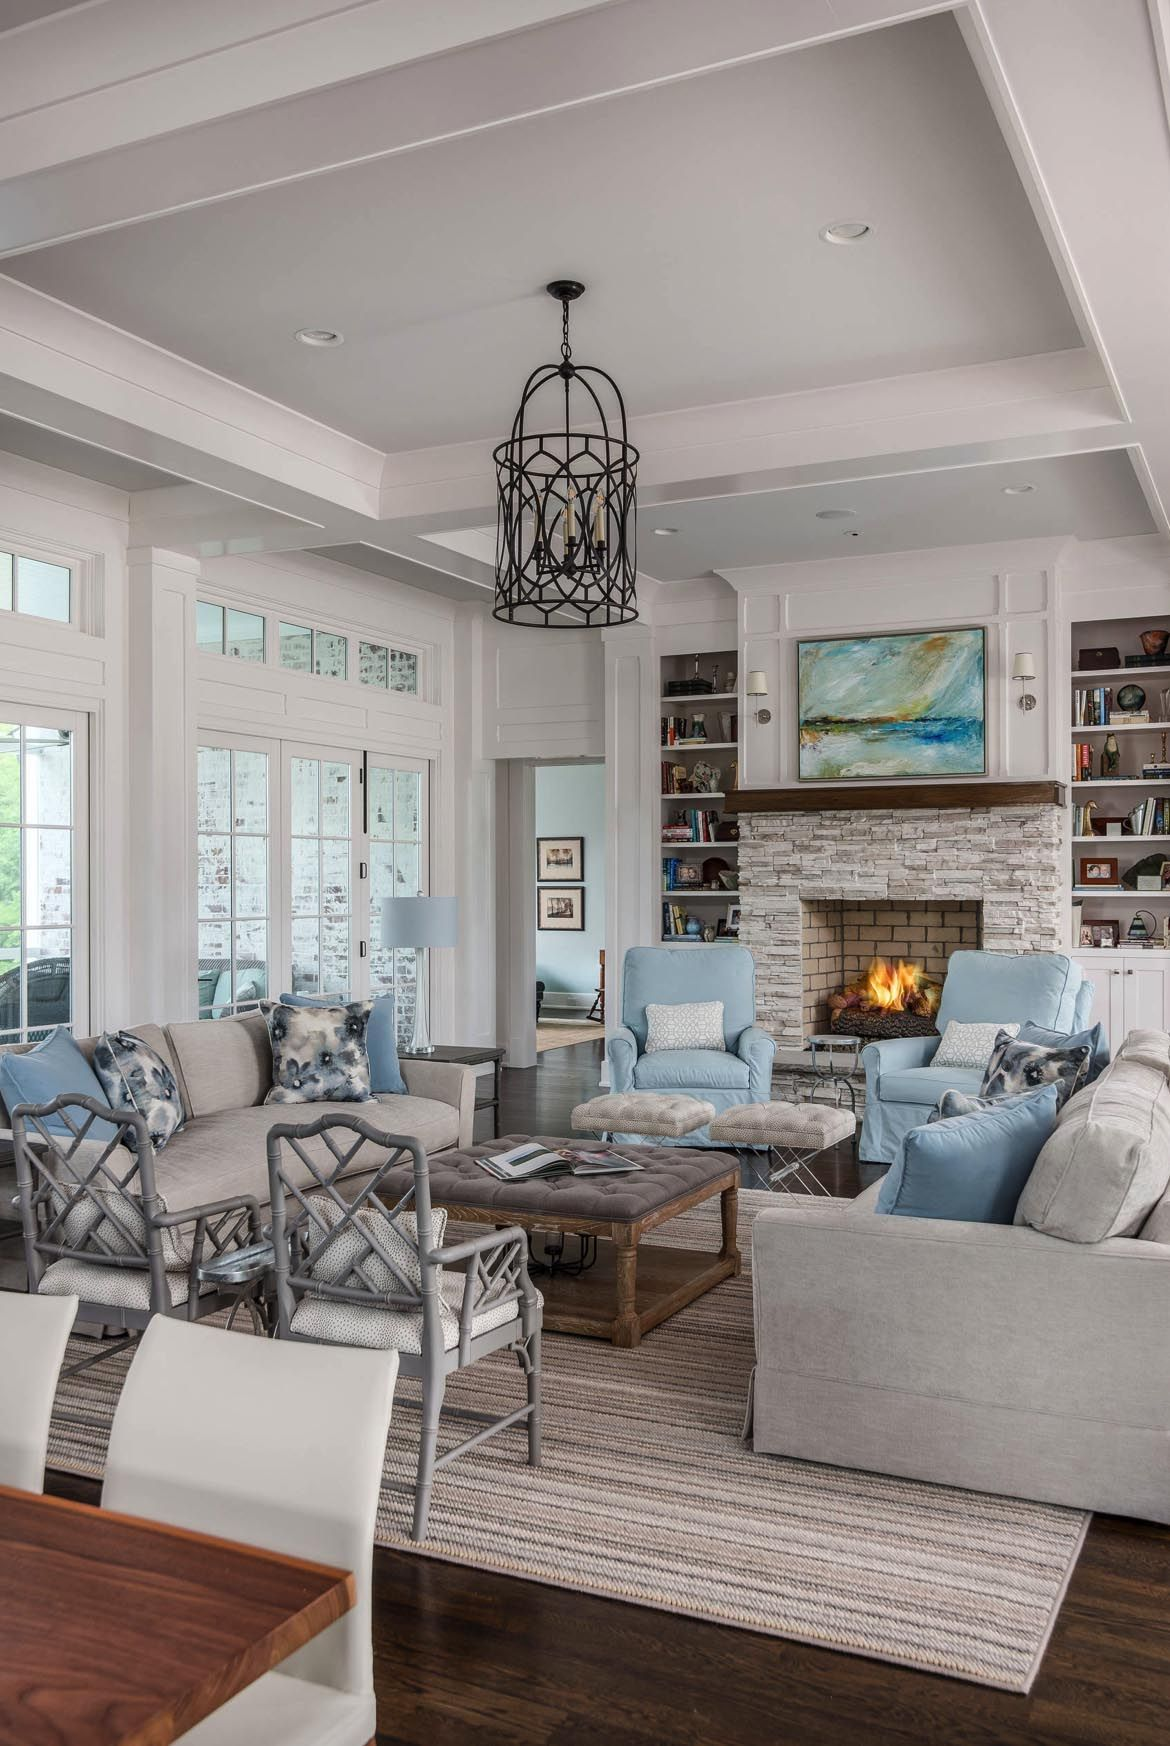 House Tour An Absolutely Gorgeous Transitional Farmhouse In Tennessee In 2020 Farm House Living Room Modern Farmhouse Living Room Farmhouse Living #transitional #farmhouse #living #room